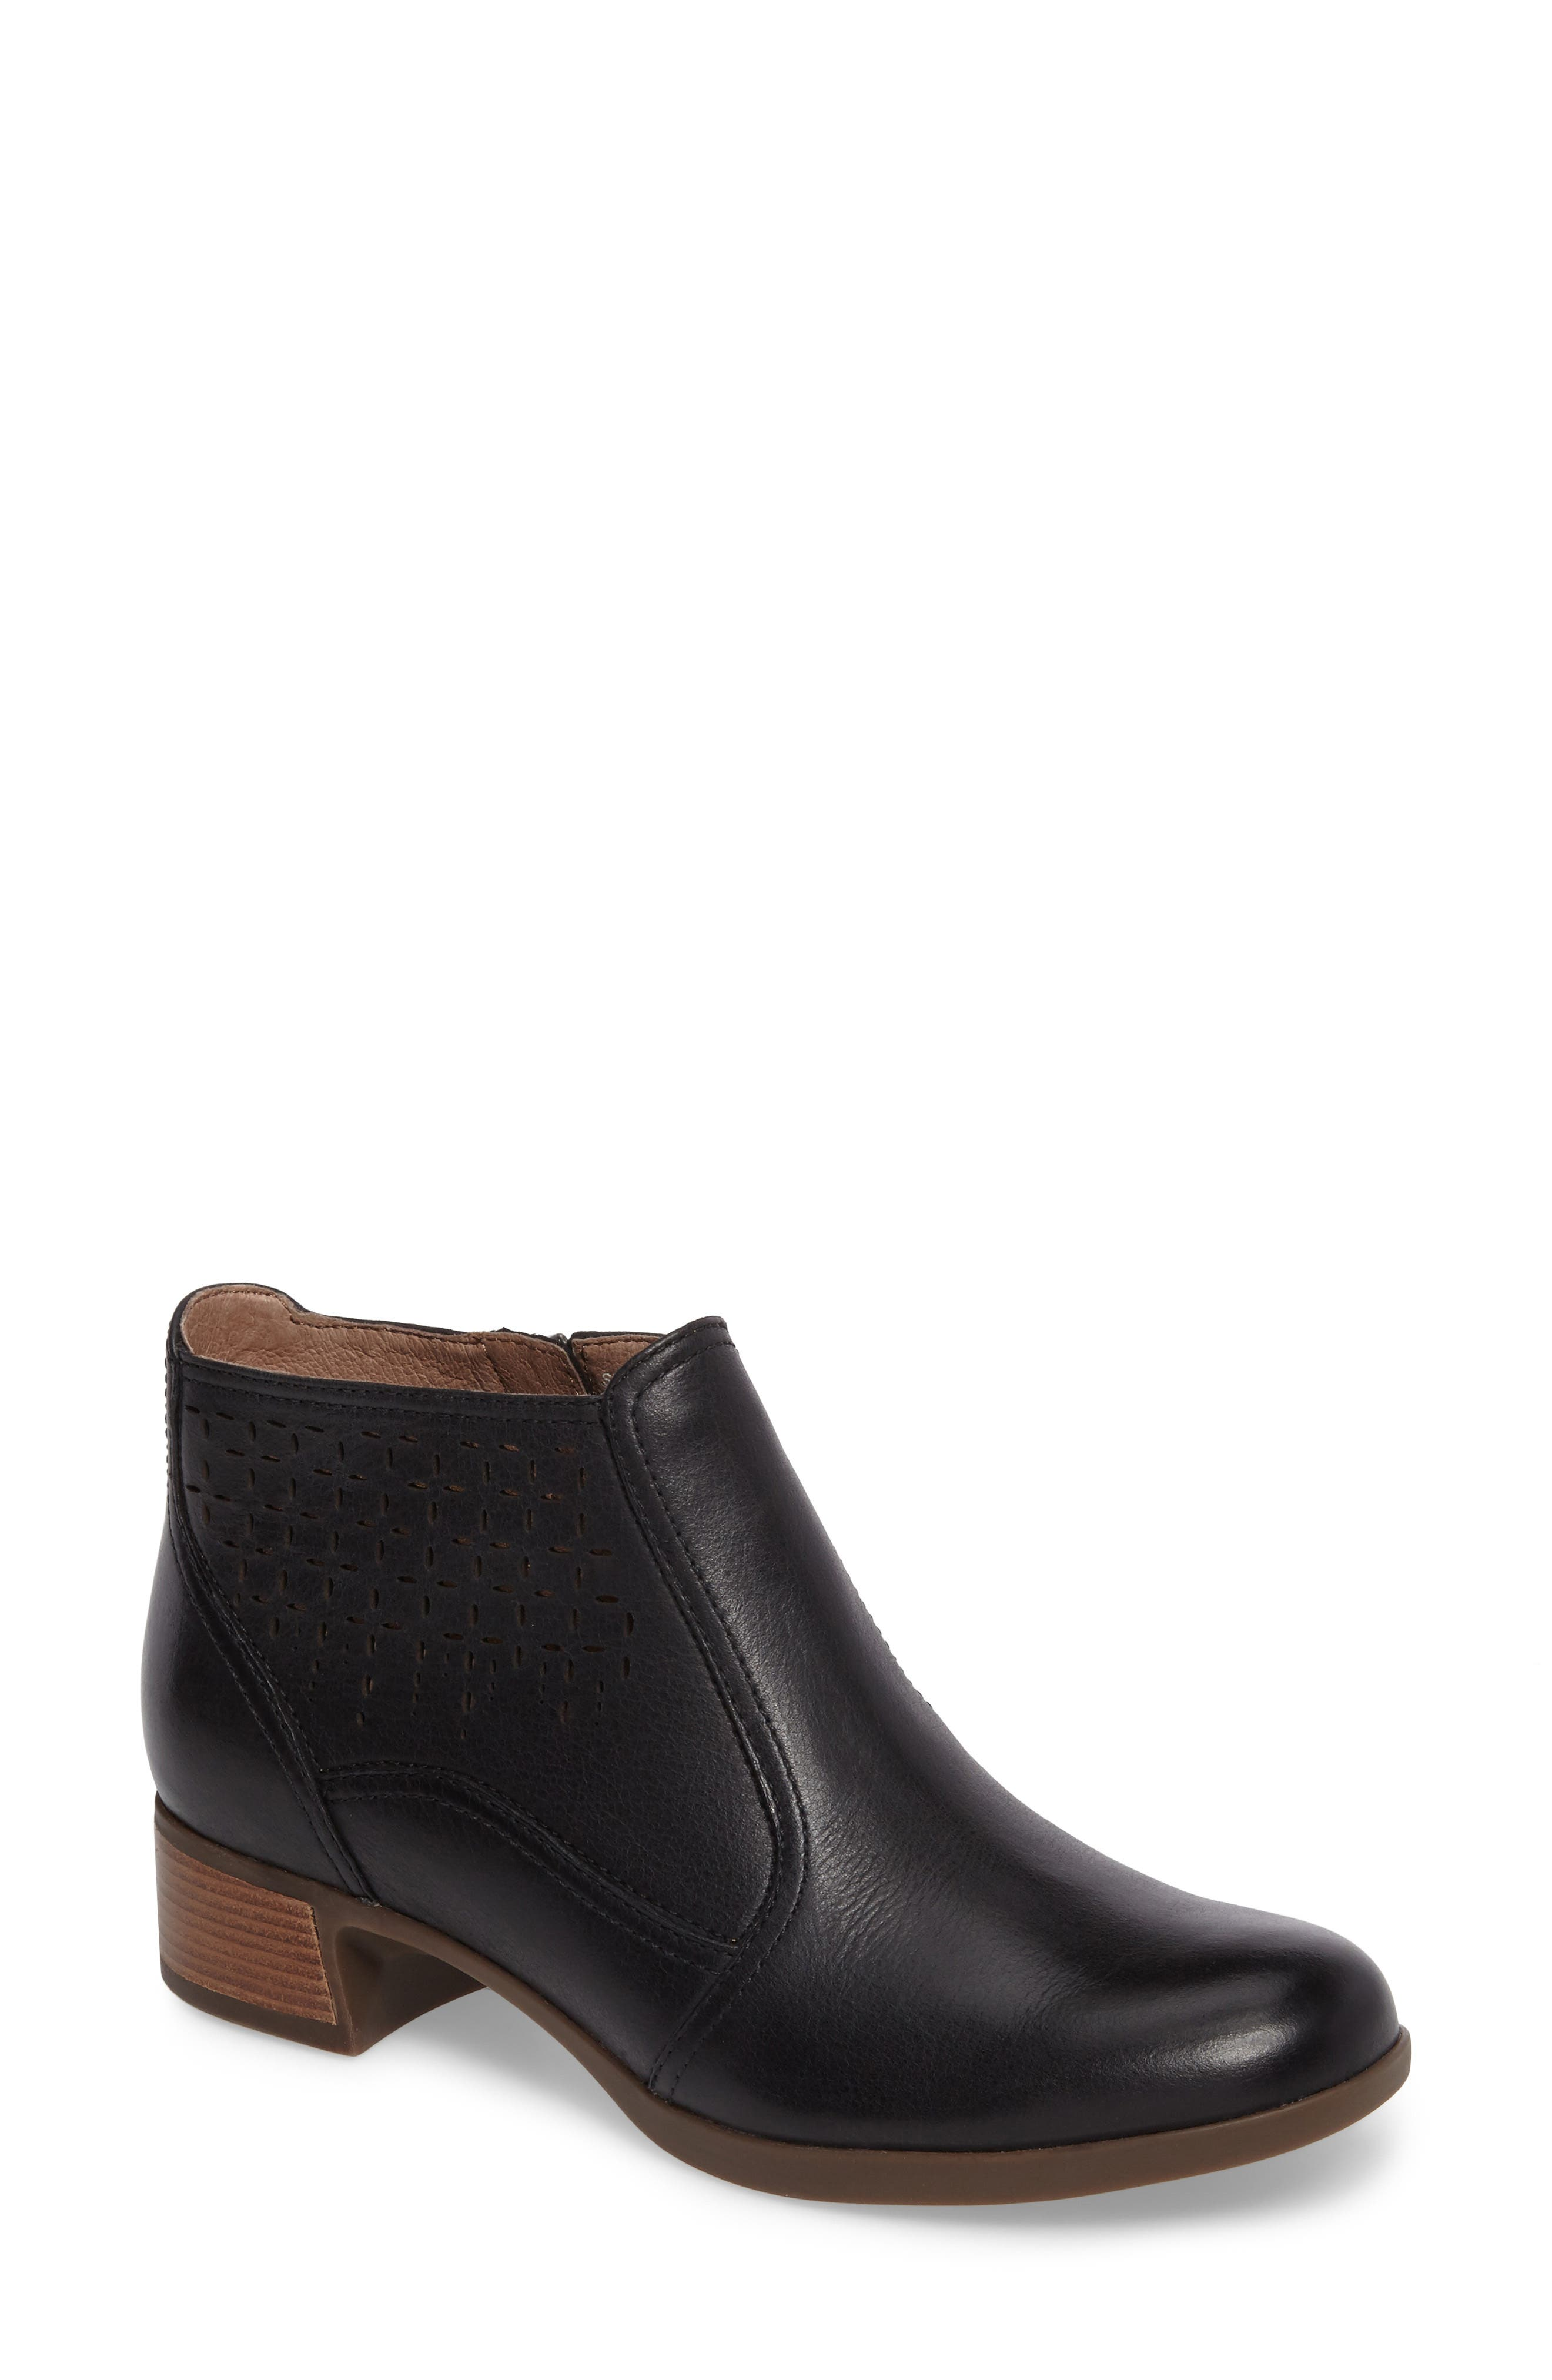 Liberty Laser Cut Bootie,                             Main thumbnail 1, color,                             Black Burnished Nappa Leather